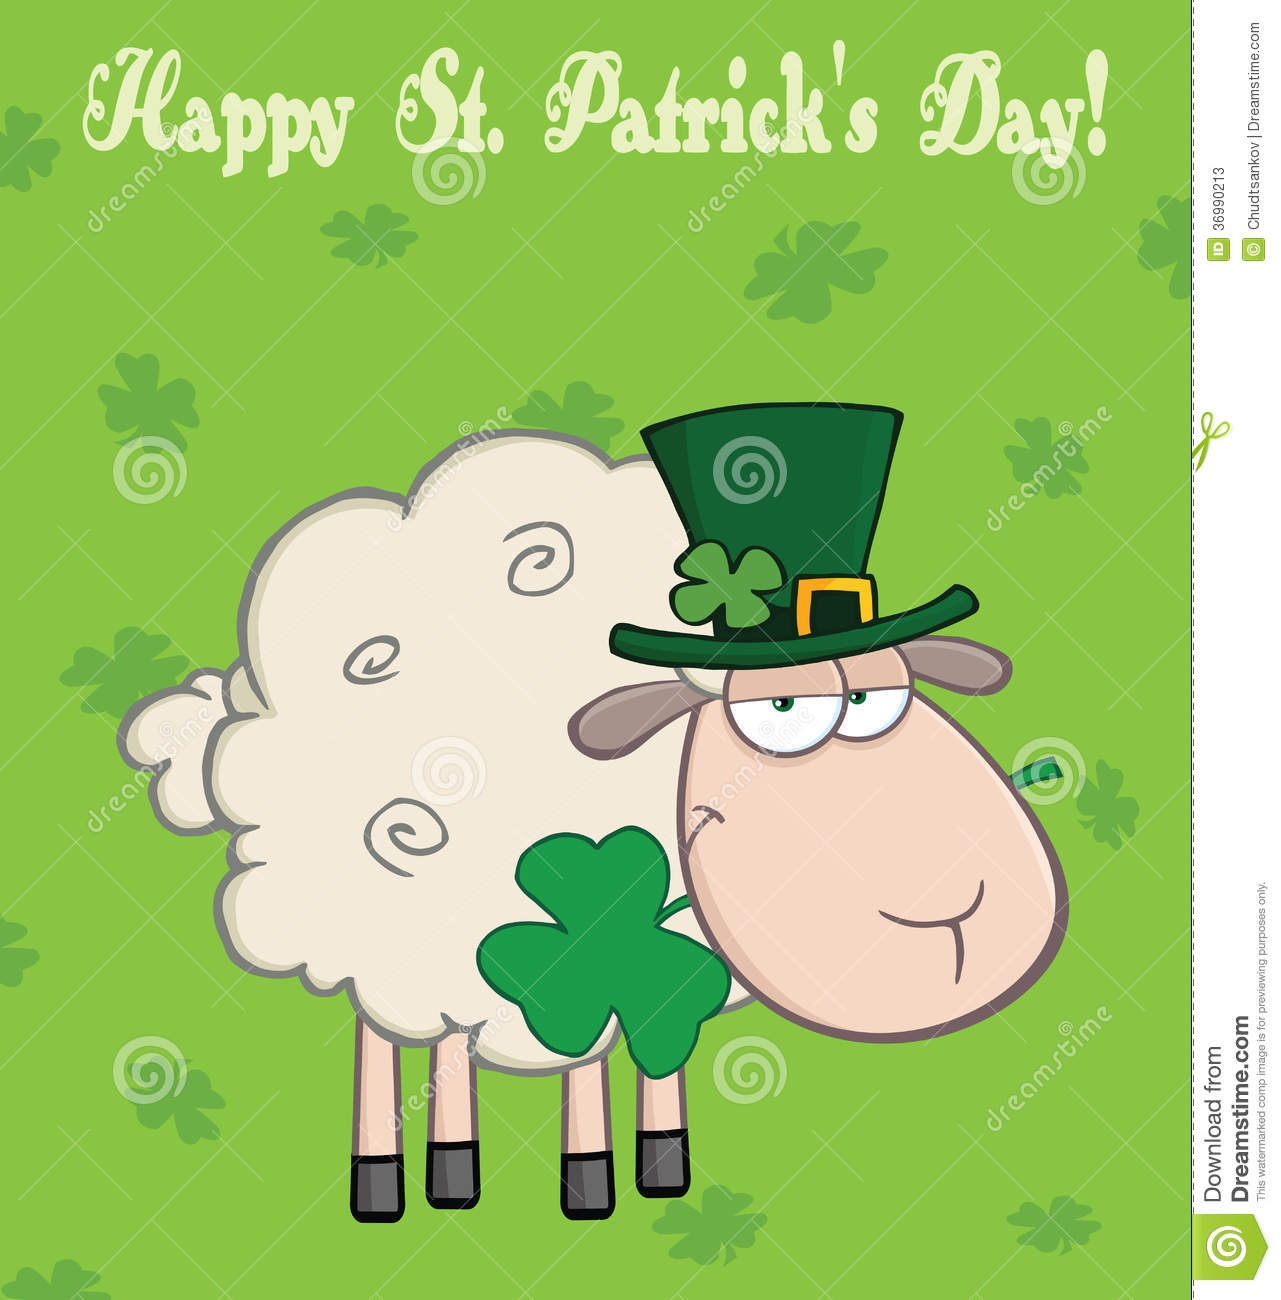 Irish Sheep Carrying A Clover In Its Mouth Under Text Happy St Patricks Day Stock Photos